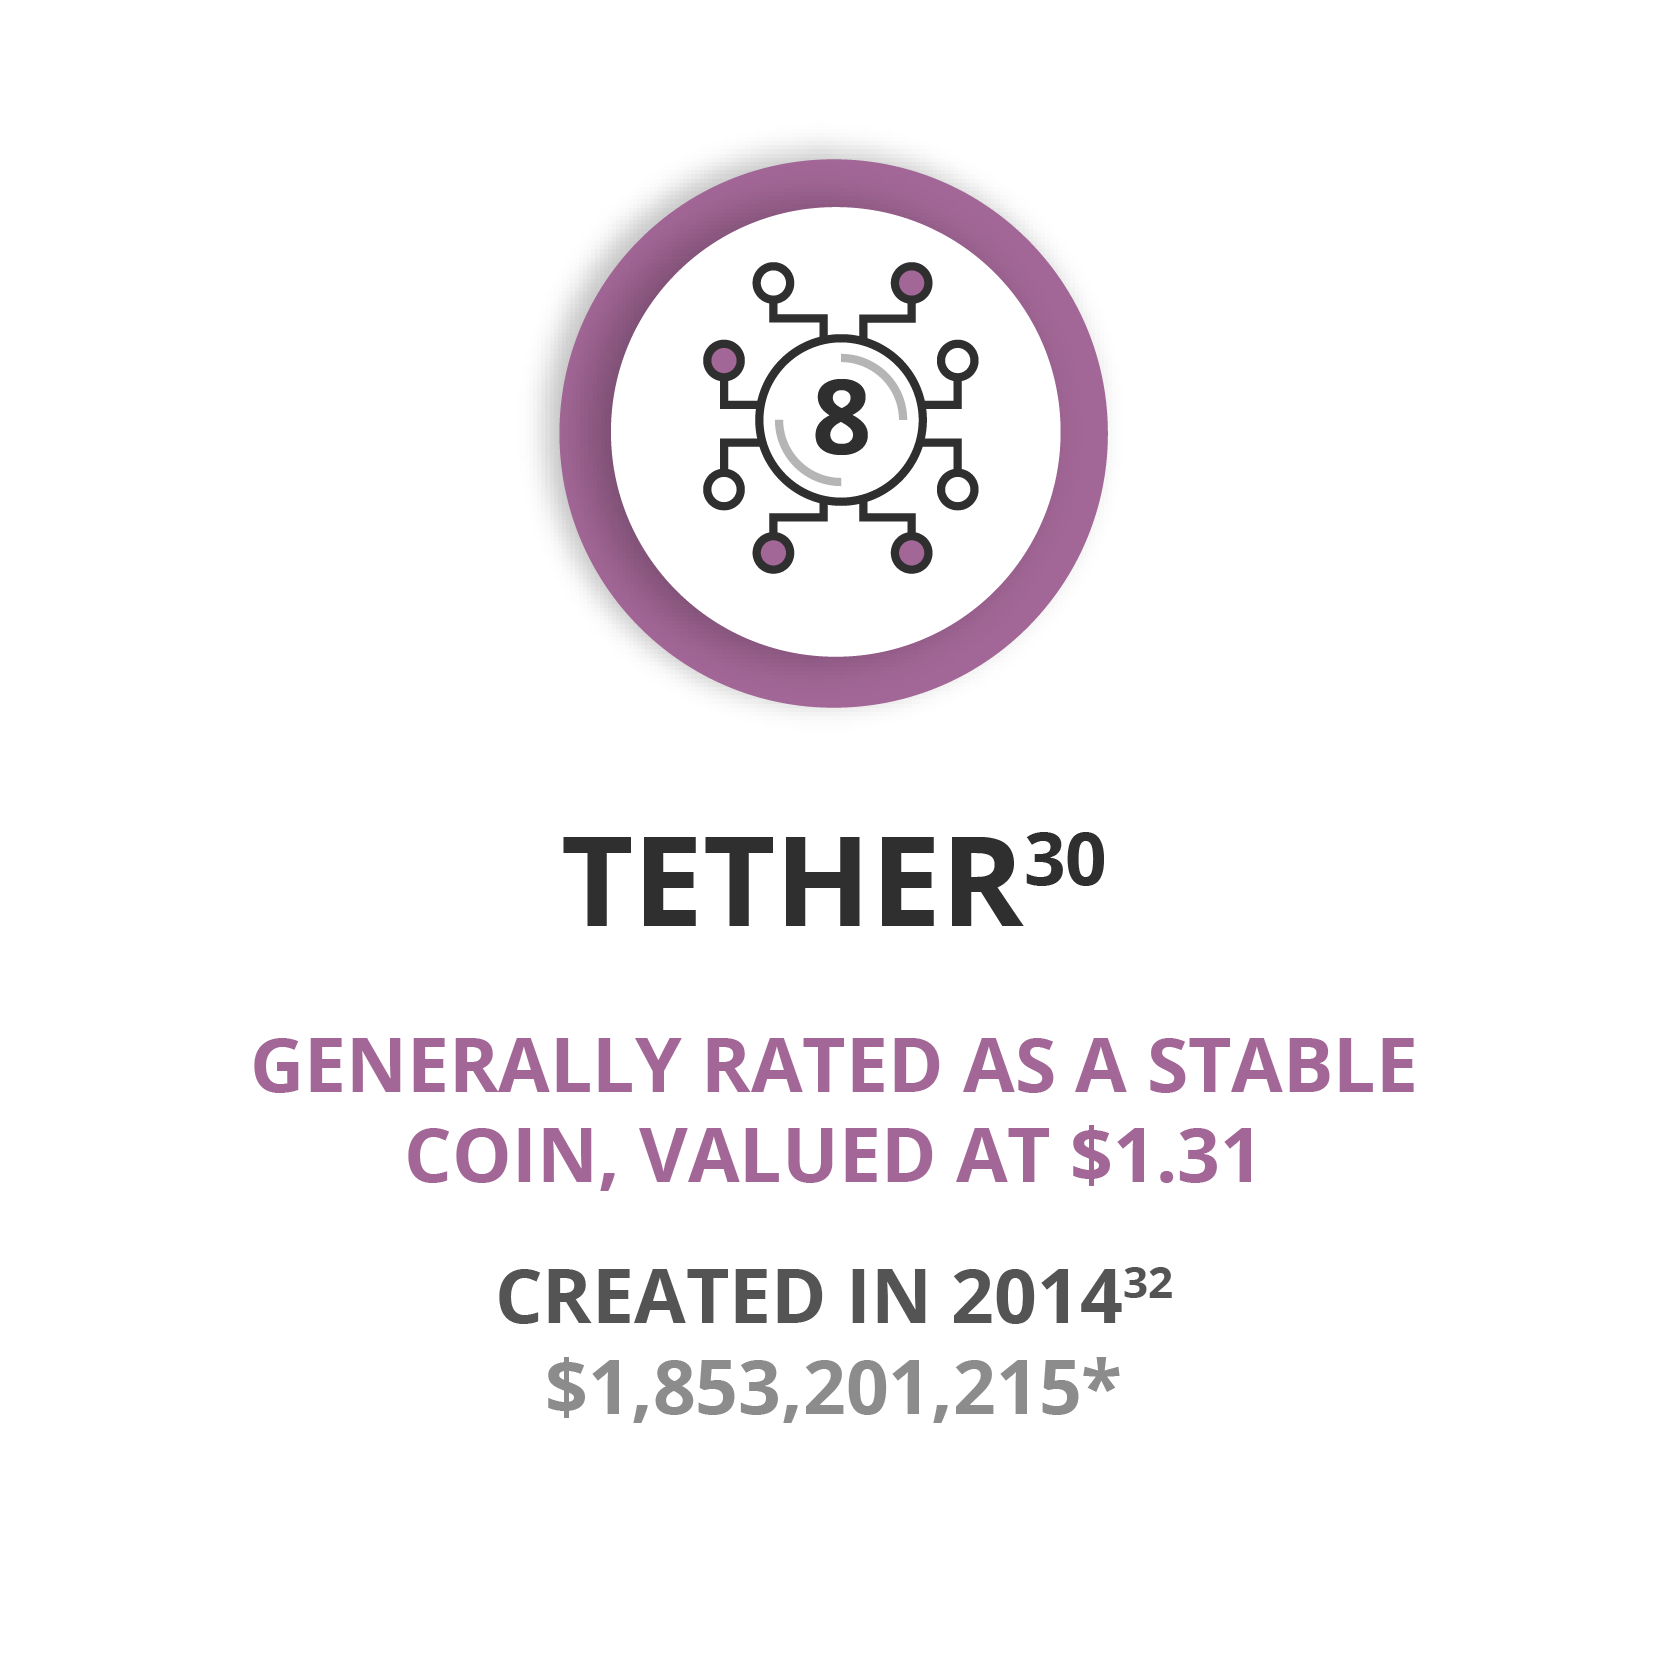 Tether - Generally rated as a stable cryptocurrency. Valued at approx. $1.31